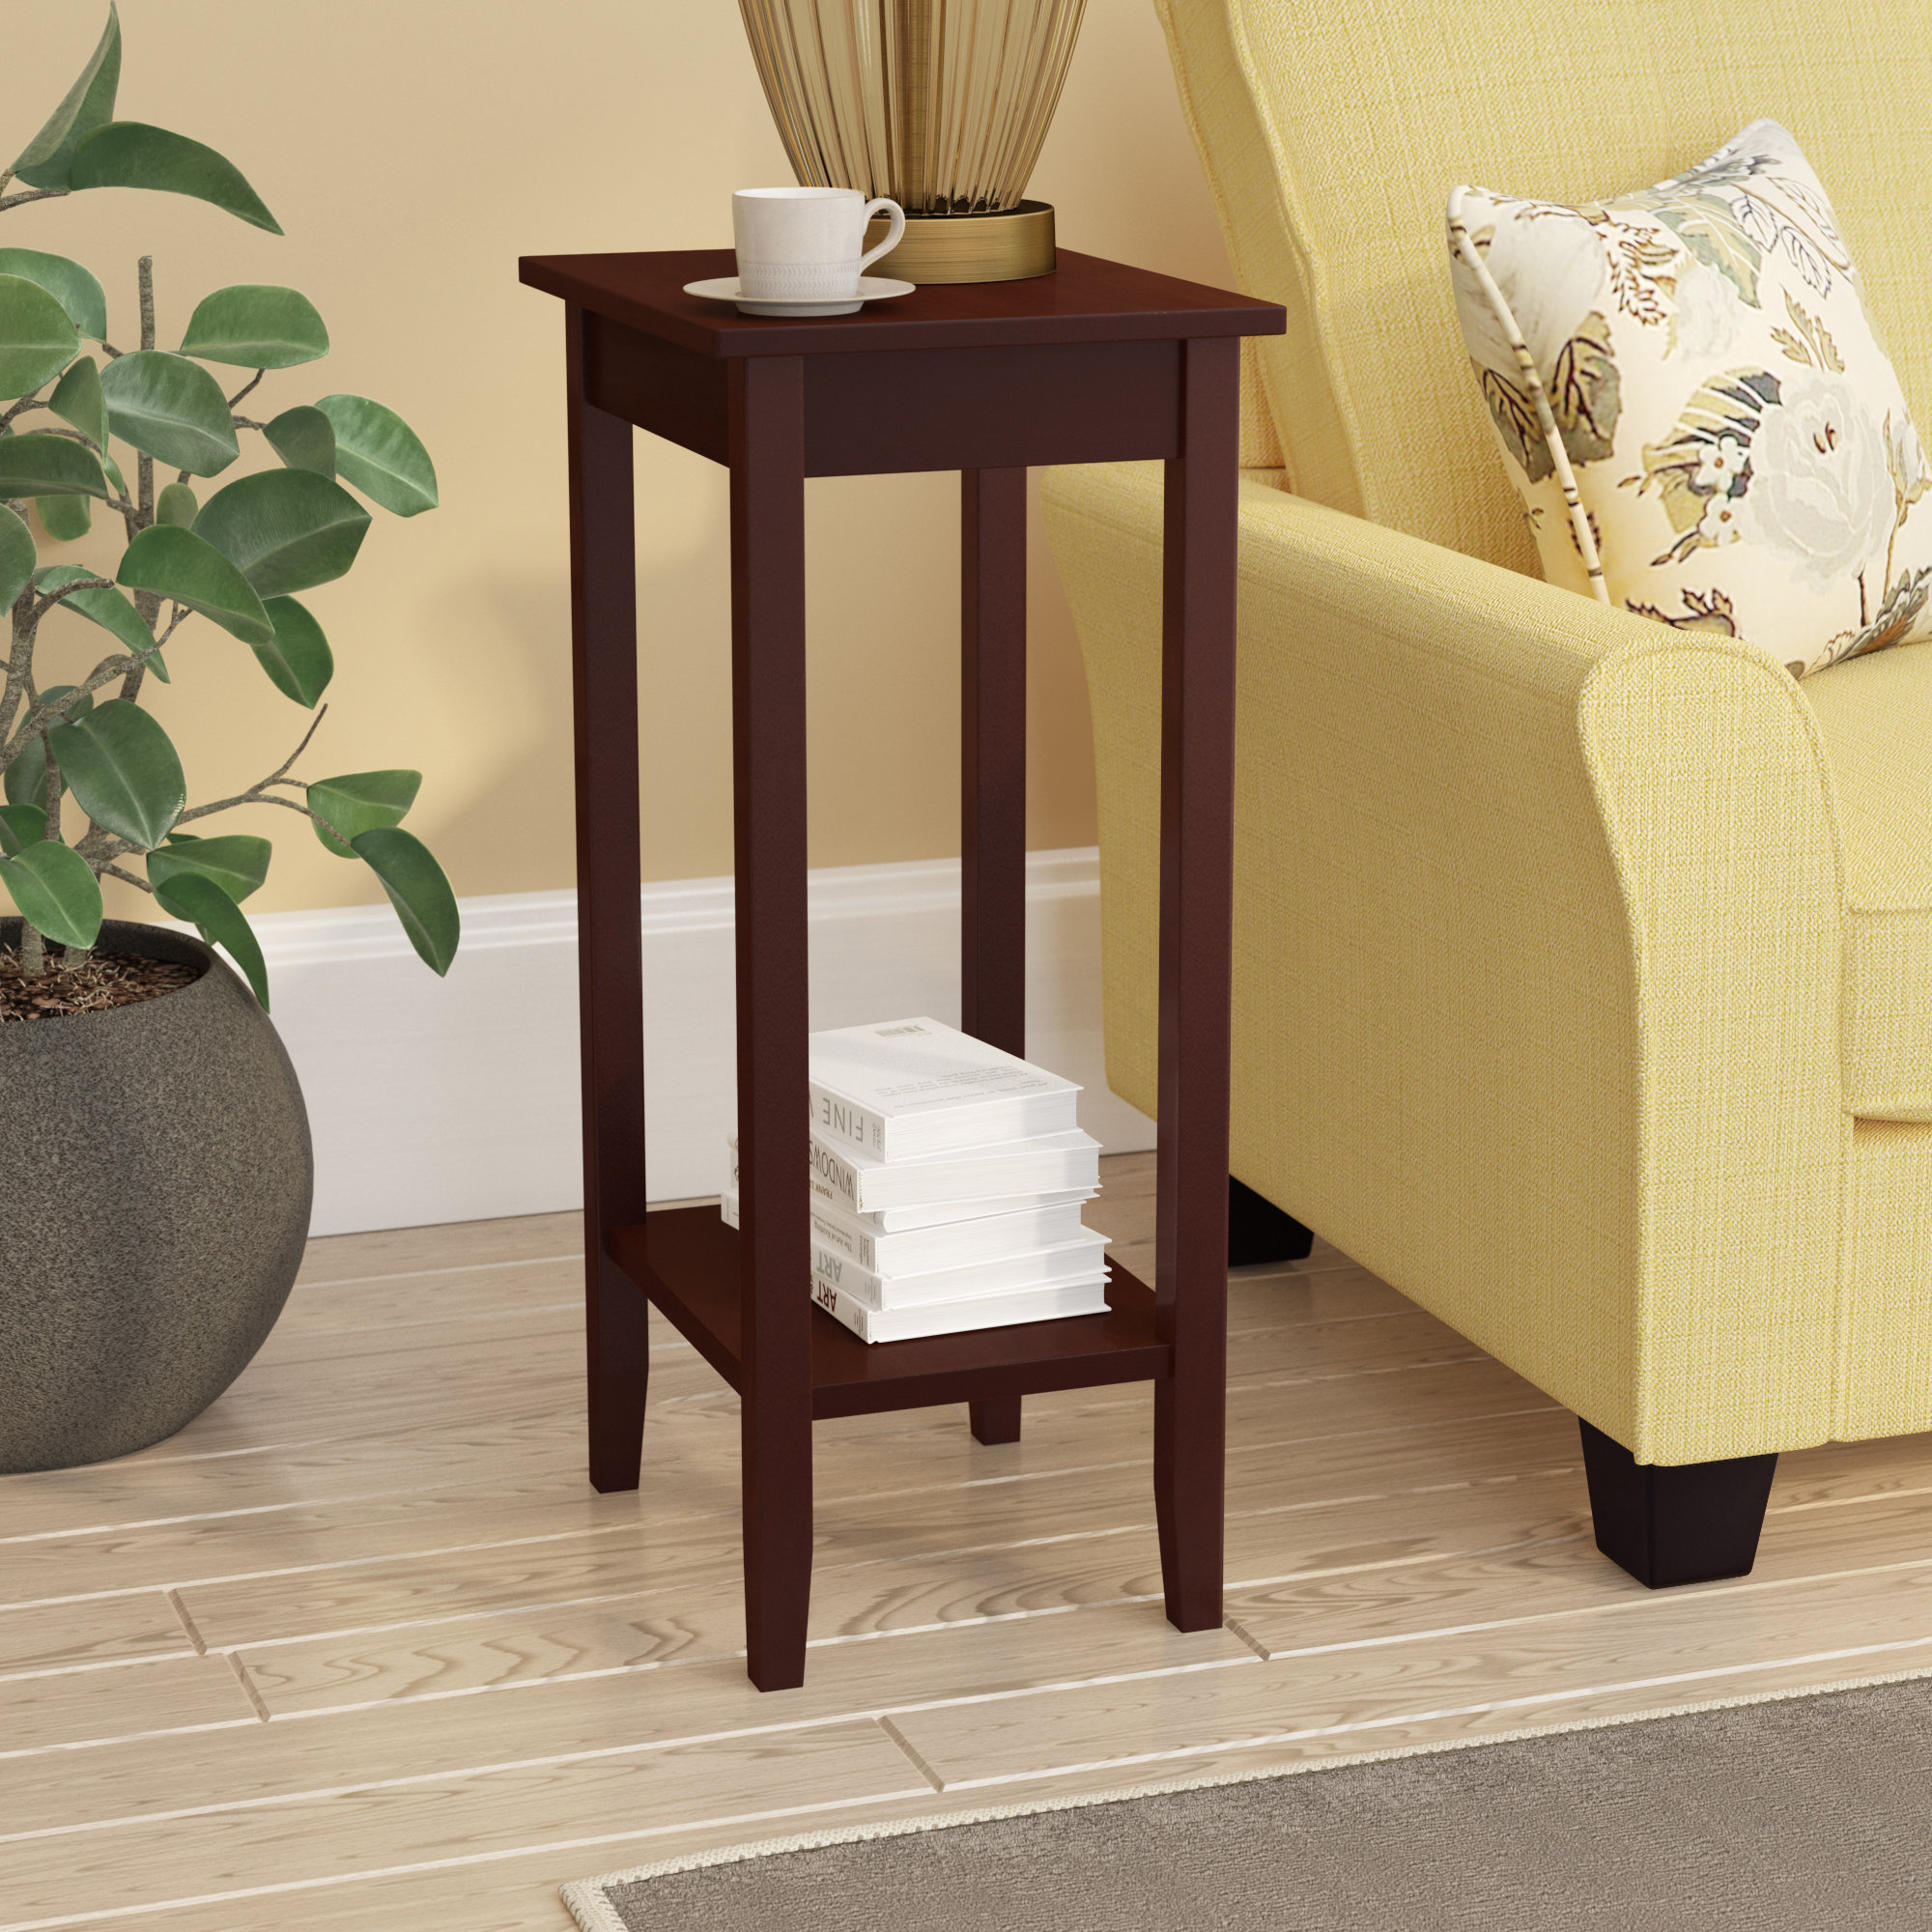 tall skinny accent table noble rosewood end espresso quickview black counter height dining set wooden patio furniture sets penny wood with metal legs agate pine side ashley sofa